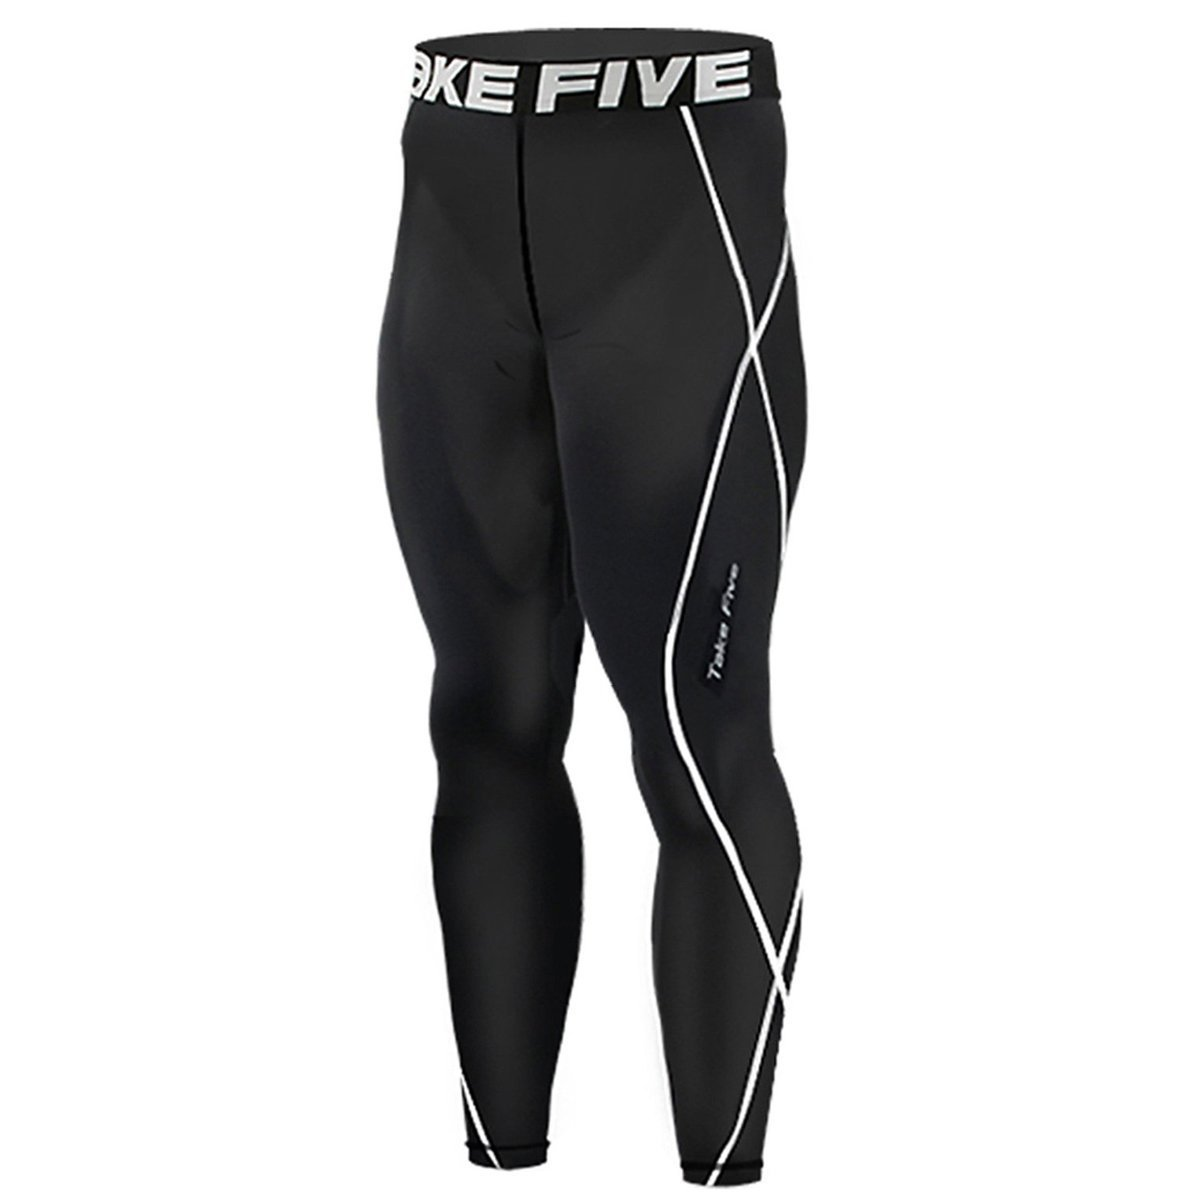 New 011 Skin Tights Compression Leggings Base Layer Black Running Pants Mens Take 5